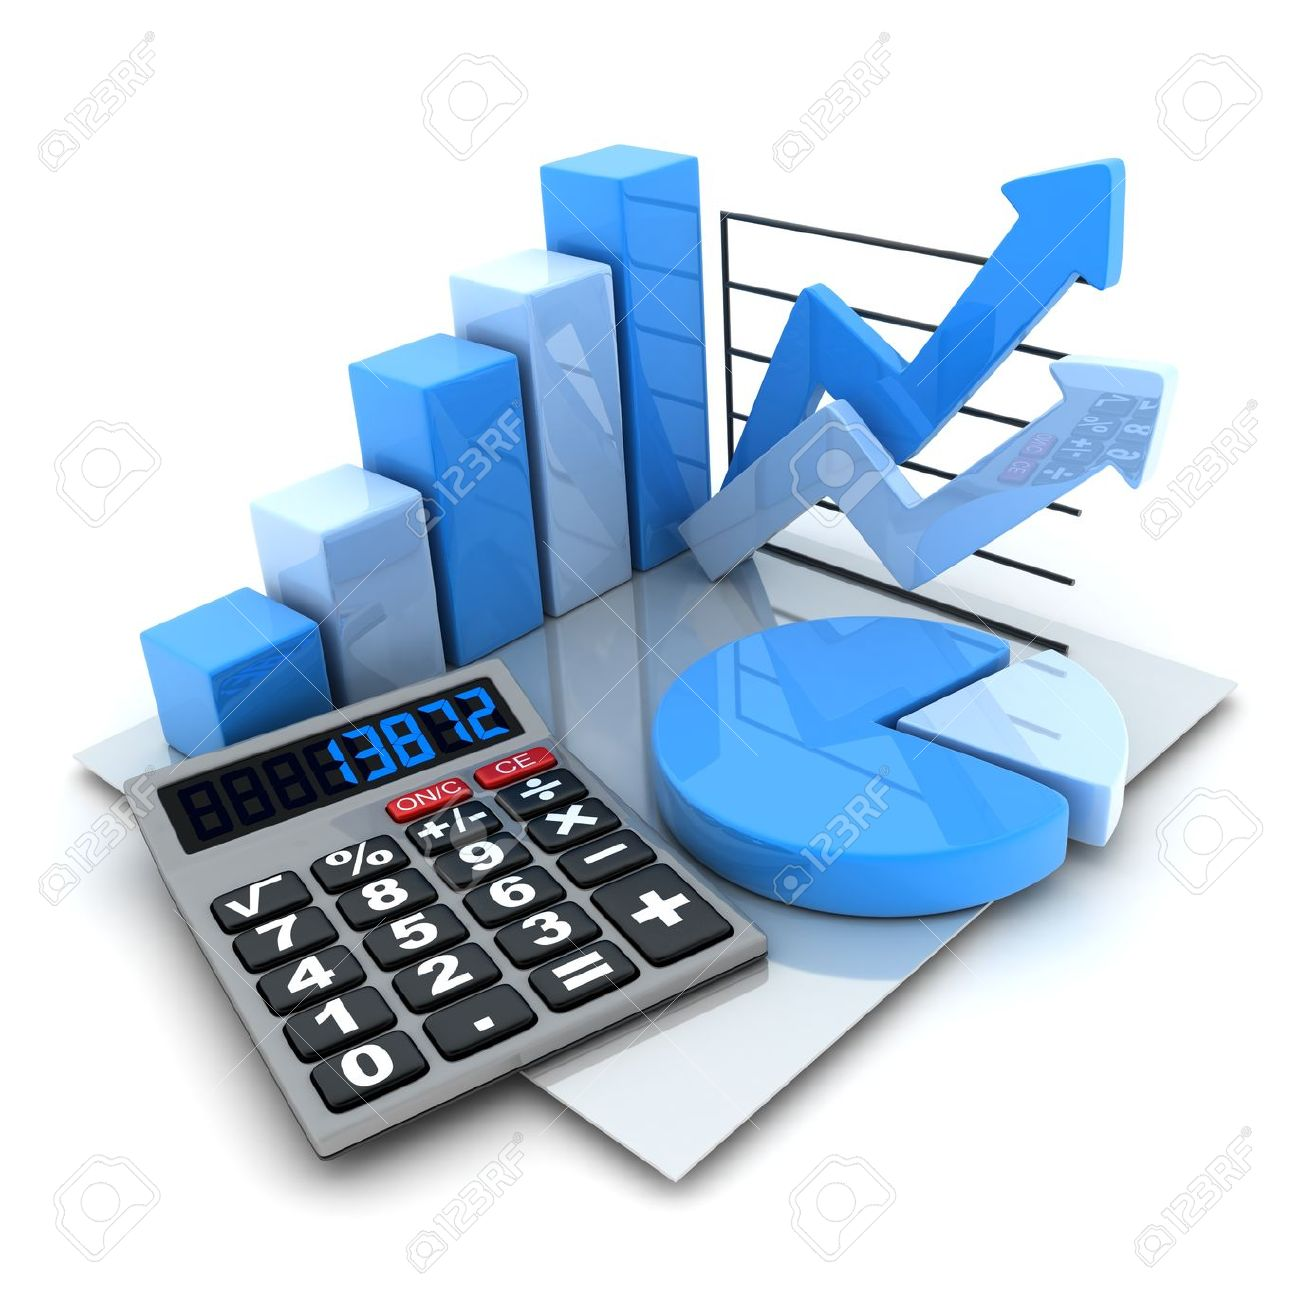 collection of free. Calculator clipart finance